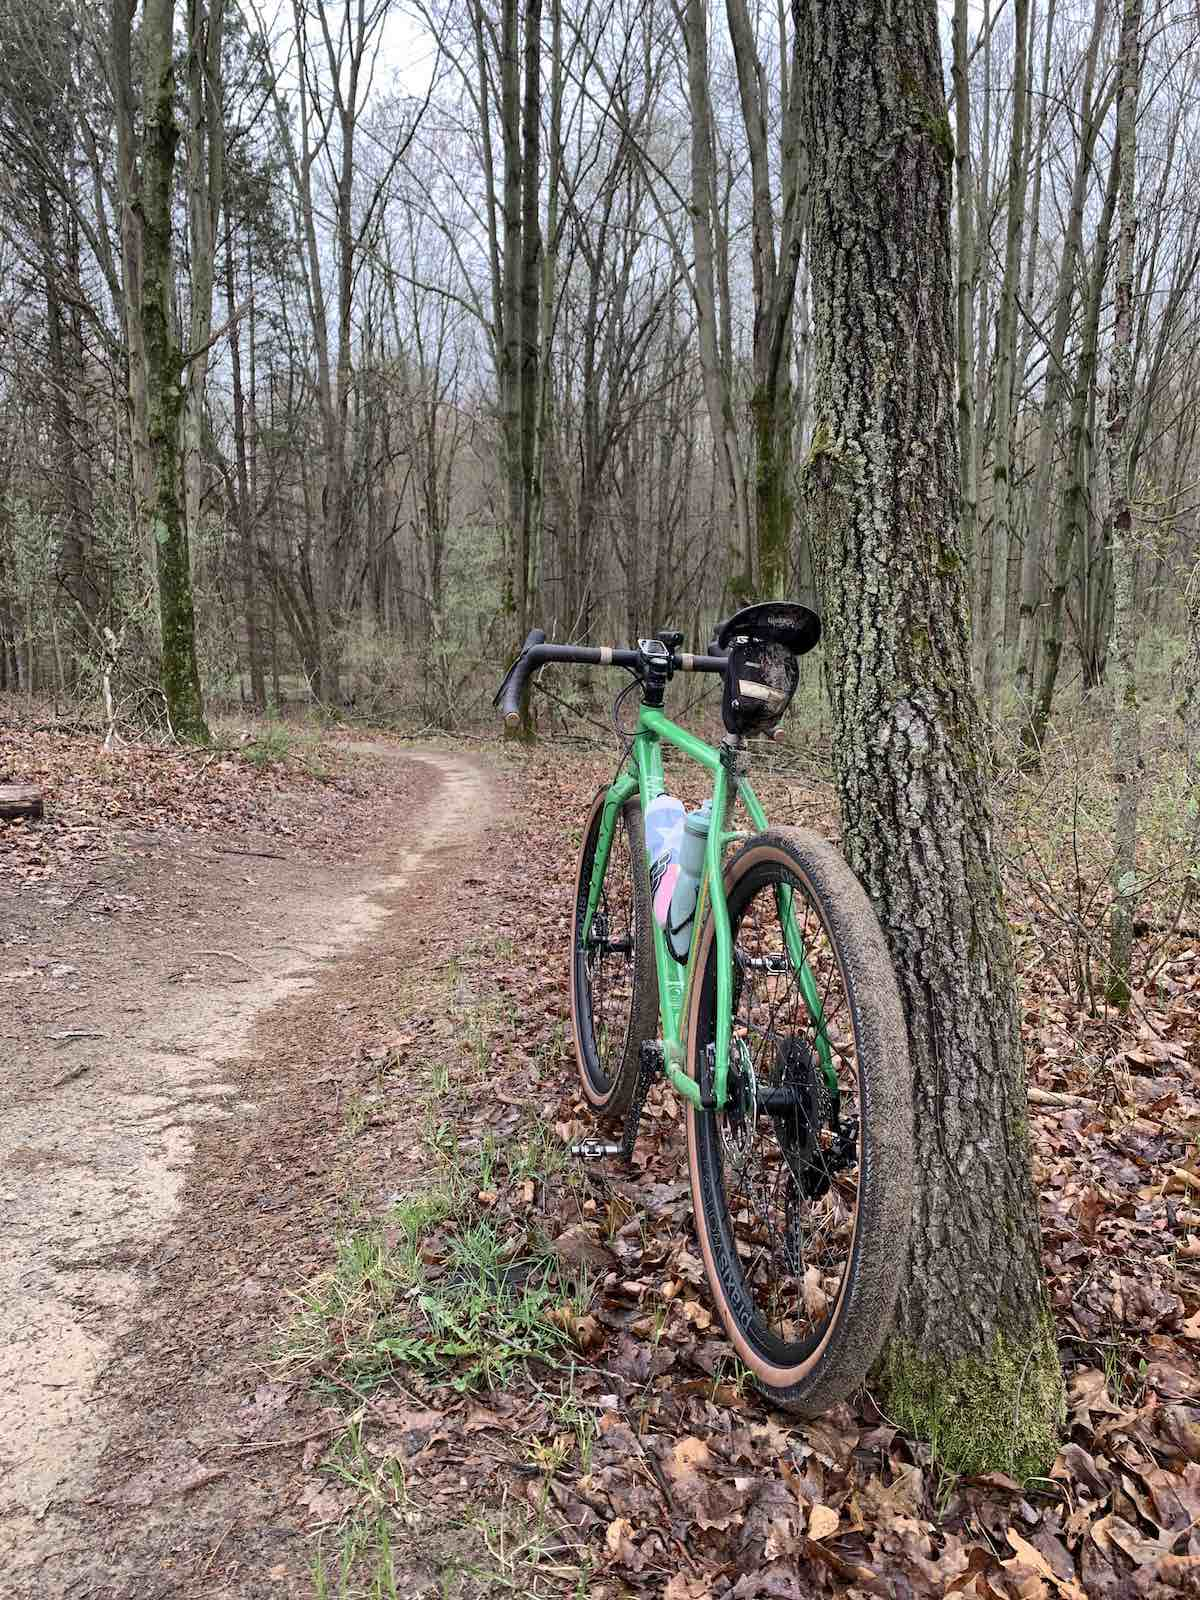 bikerumor pic of the day a green bicycle leans against a tree on a dirt trail in the woods. small leaves are beginning to show that spring is coming.